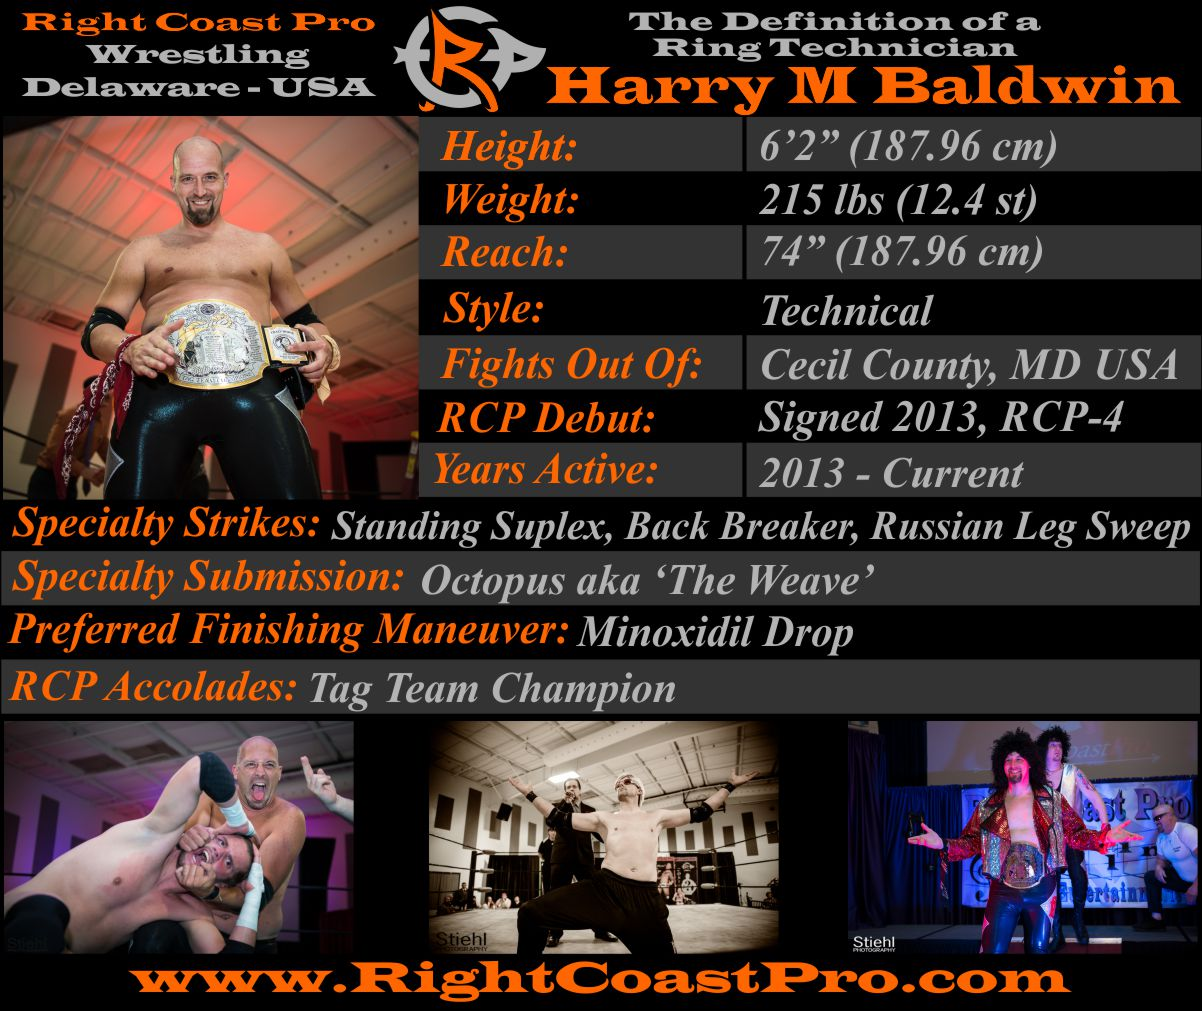 Harry Baldwin AthleteProfile RightCoastPro Wrestling Delaware